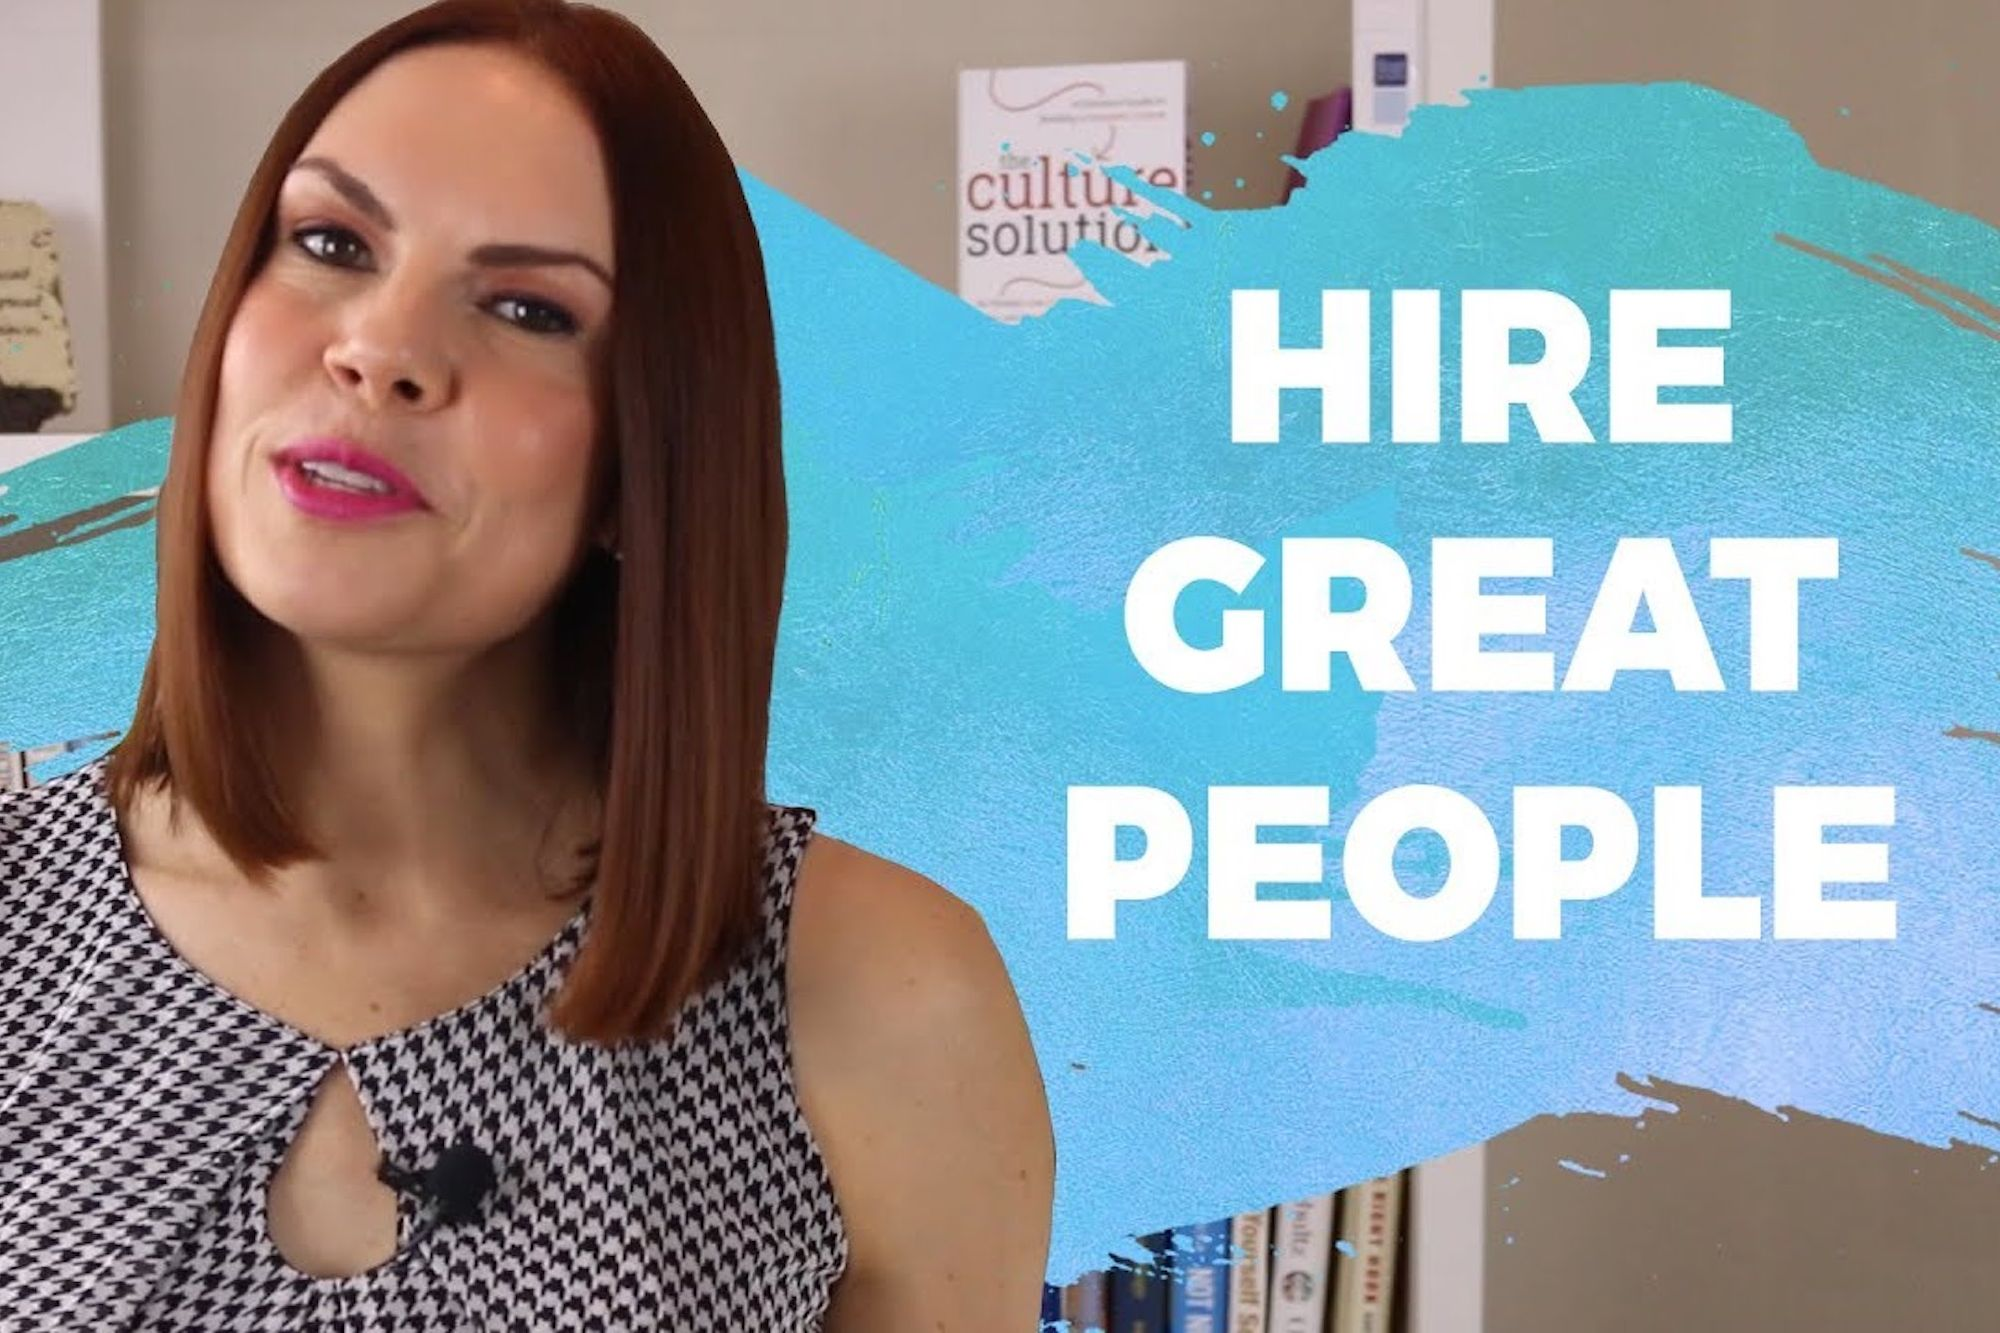 The Importance of Hiring the Very Best Instead of the Most Convenient